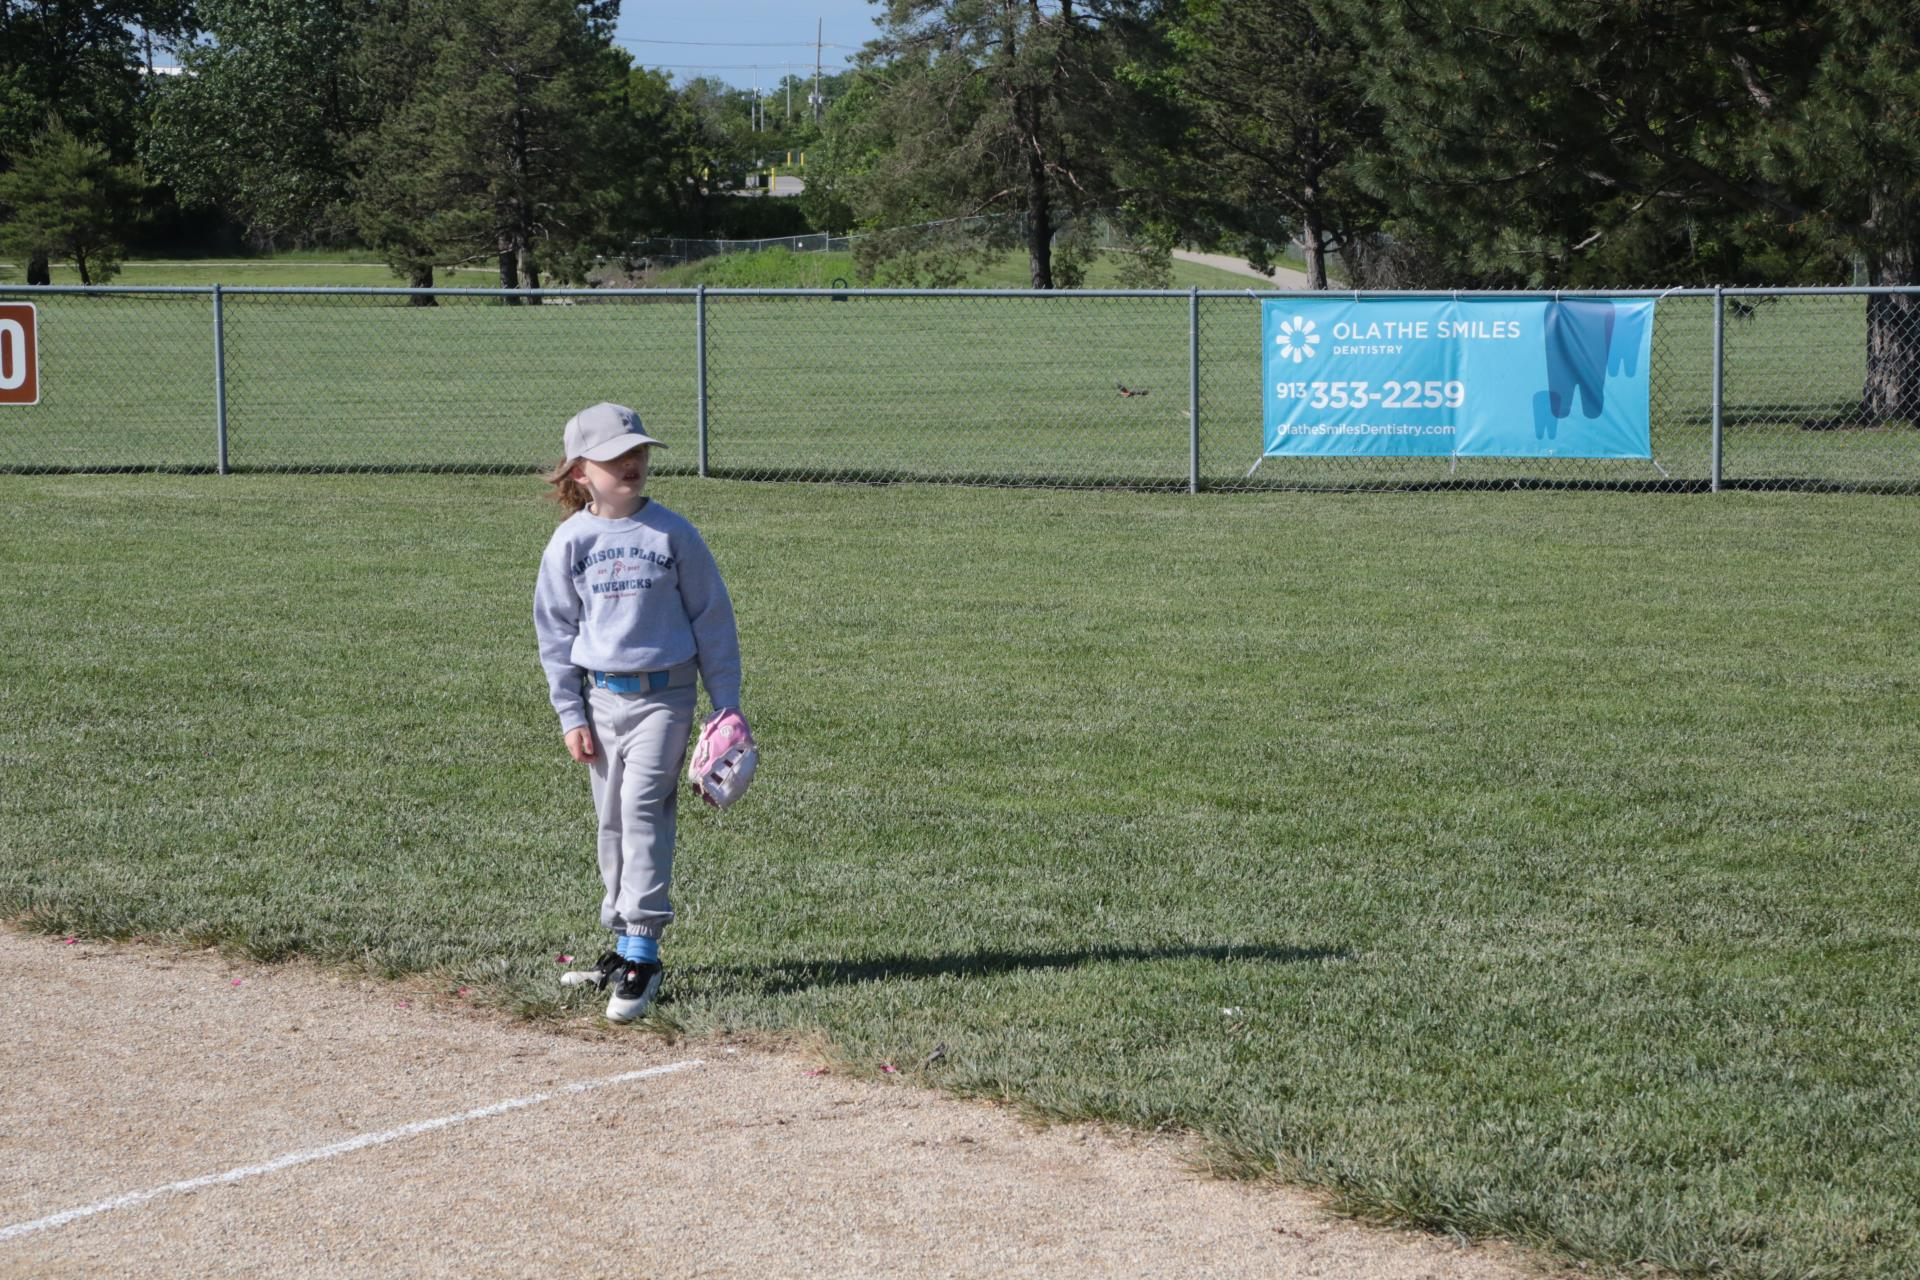 a young child is playing baseball on the infield, with the photo displaying a banner on the outfield fence